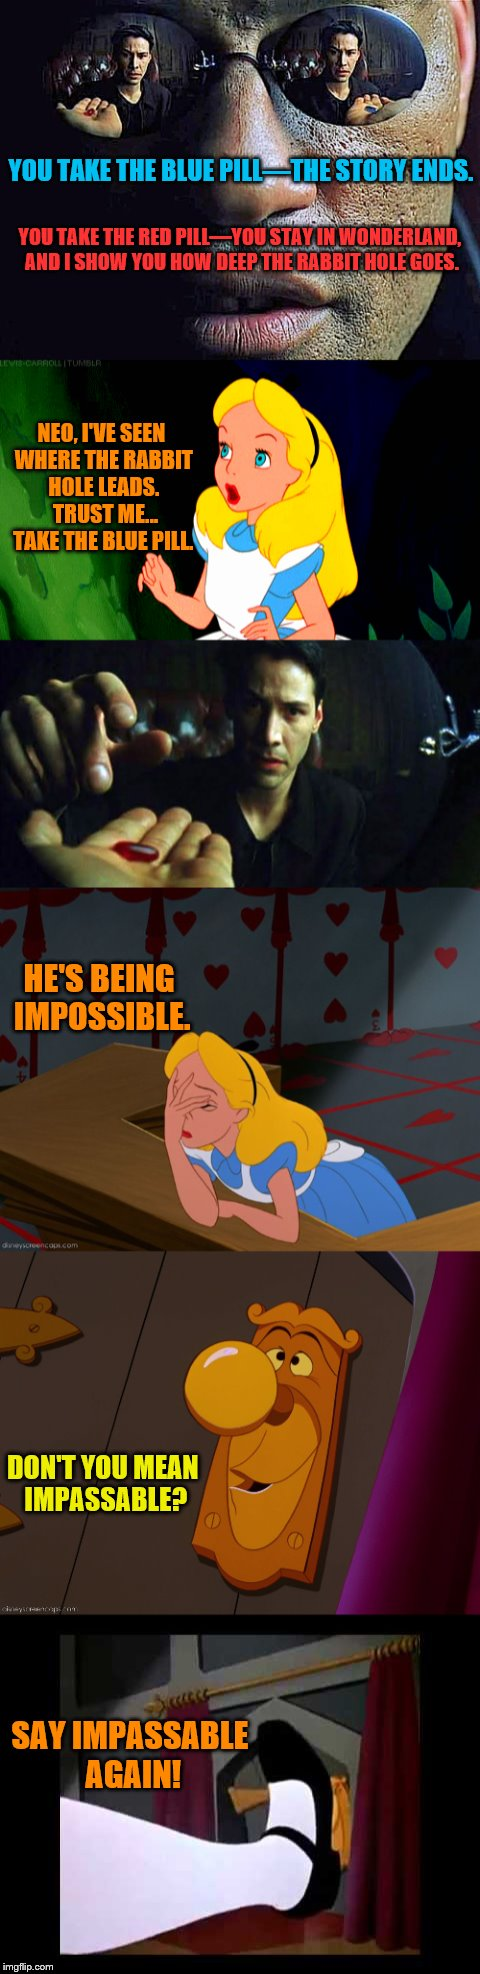 It's ok, Alice.  That doorknob annoys me too. | YOU TAKE THE BLUE PILL—THE STORY ENDS. SAY IMPASSABLE AGAIN! YOU TAKE THE RED PILL—YOU STAY IN WONDERLAND, AND I SHOW YOU HOW DEEP THE RABBI | image tagged in memes,alice in wonderland,red pill blue pill,matrix,doorknob | made w/ Imgflip meme maker